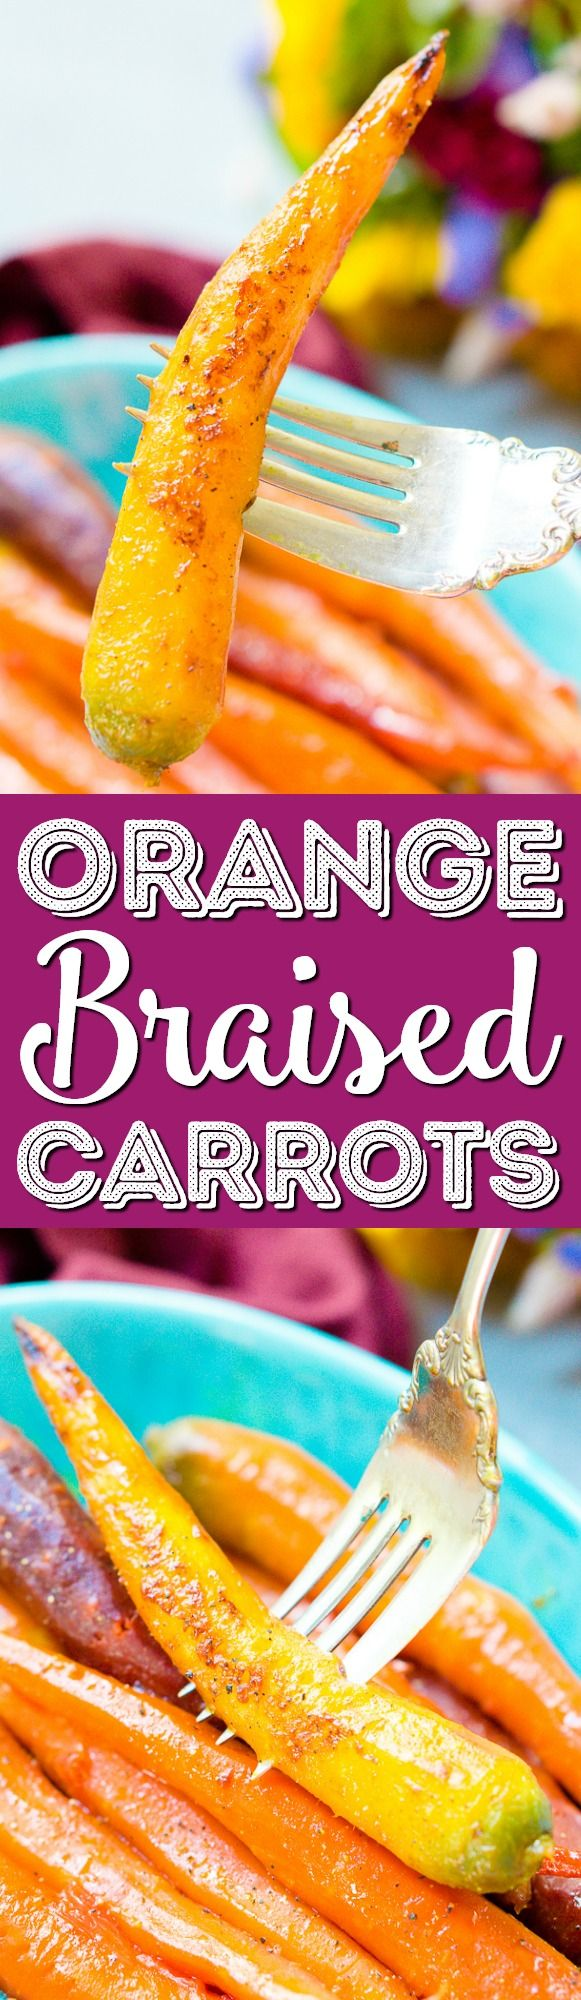 These Orange Braised Carrots are bound to be a highlight on your dinner table! Made with fresh-squeezed orange juice, butter, shallots, black pepper, and turmeric, this is one delicious side dish recipe! via @sugarandsoulco